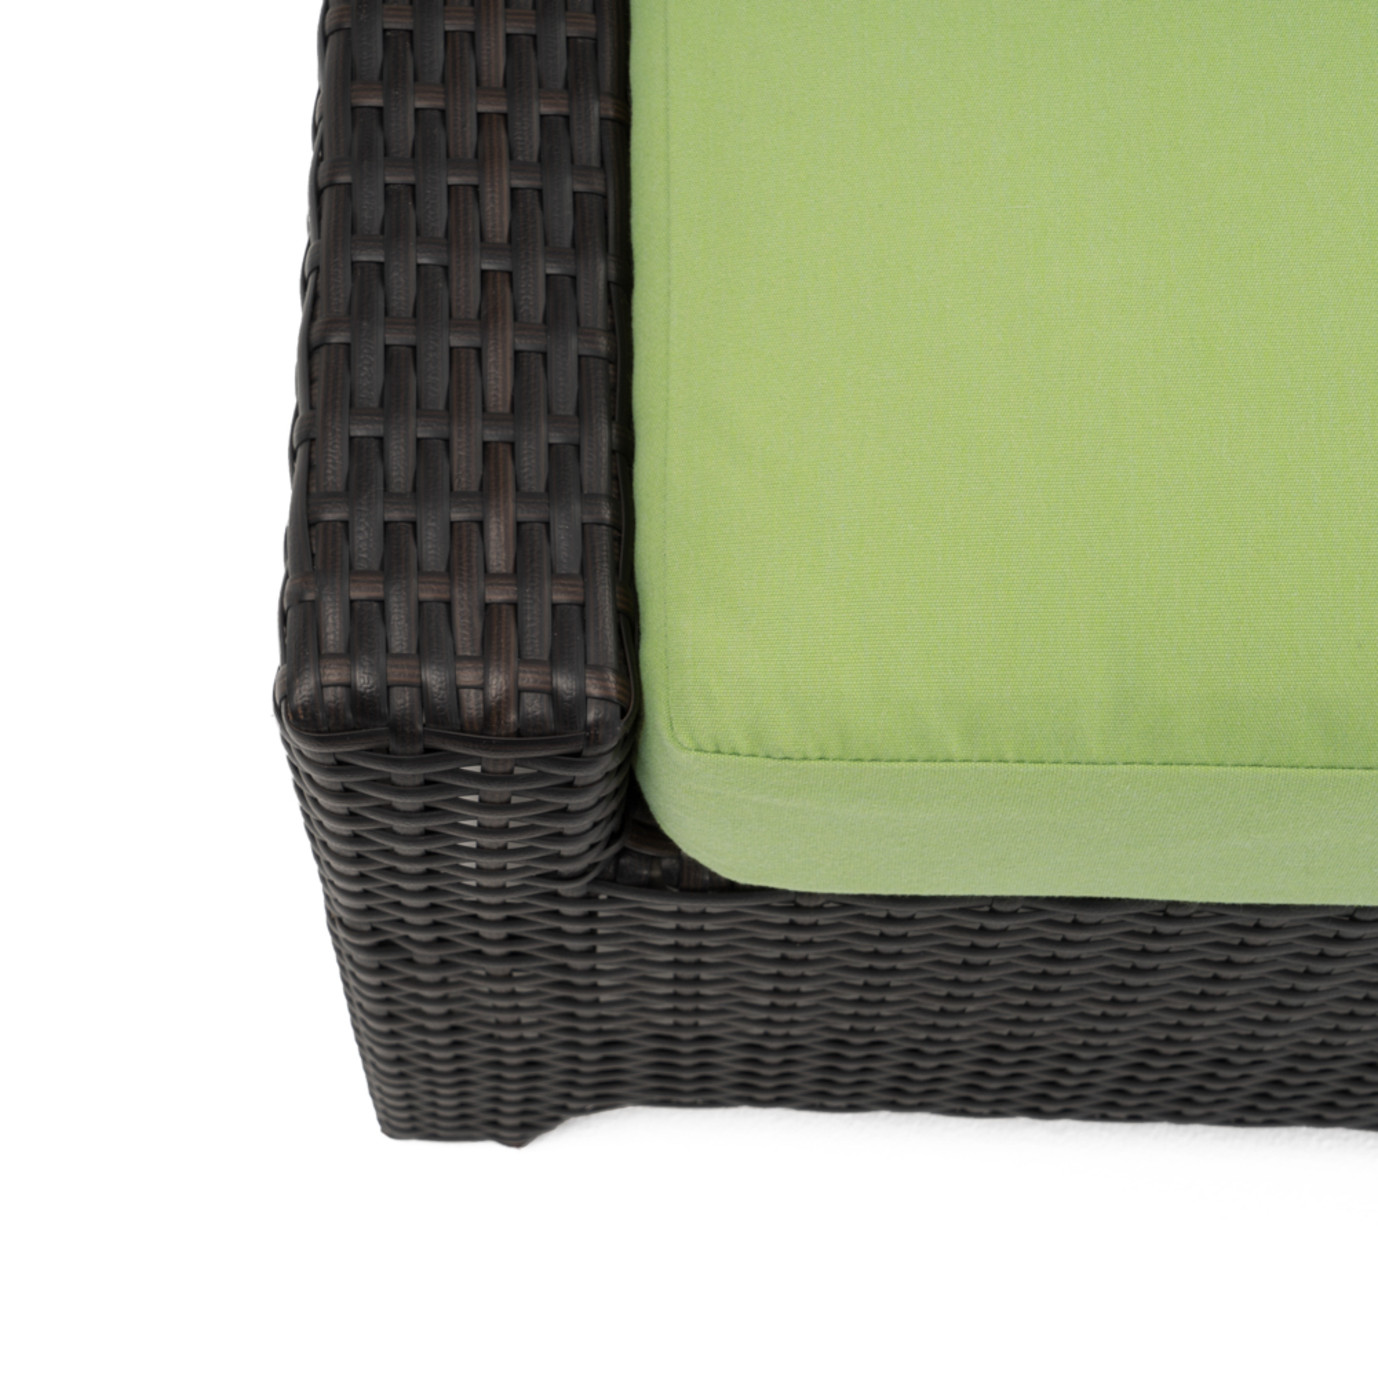 Deco™ 8pc Sofa and Club Chair Set - Ginkgo Green